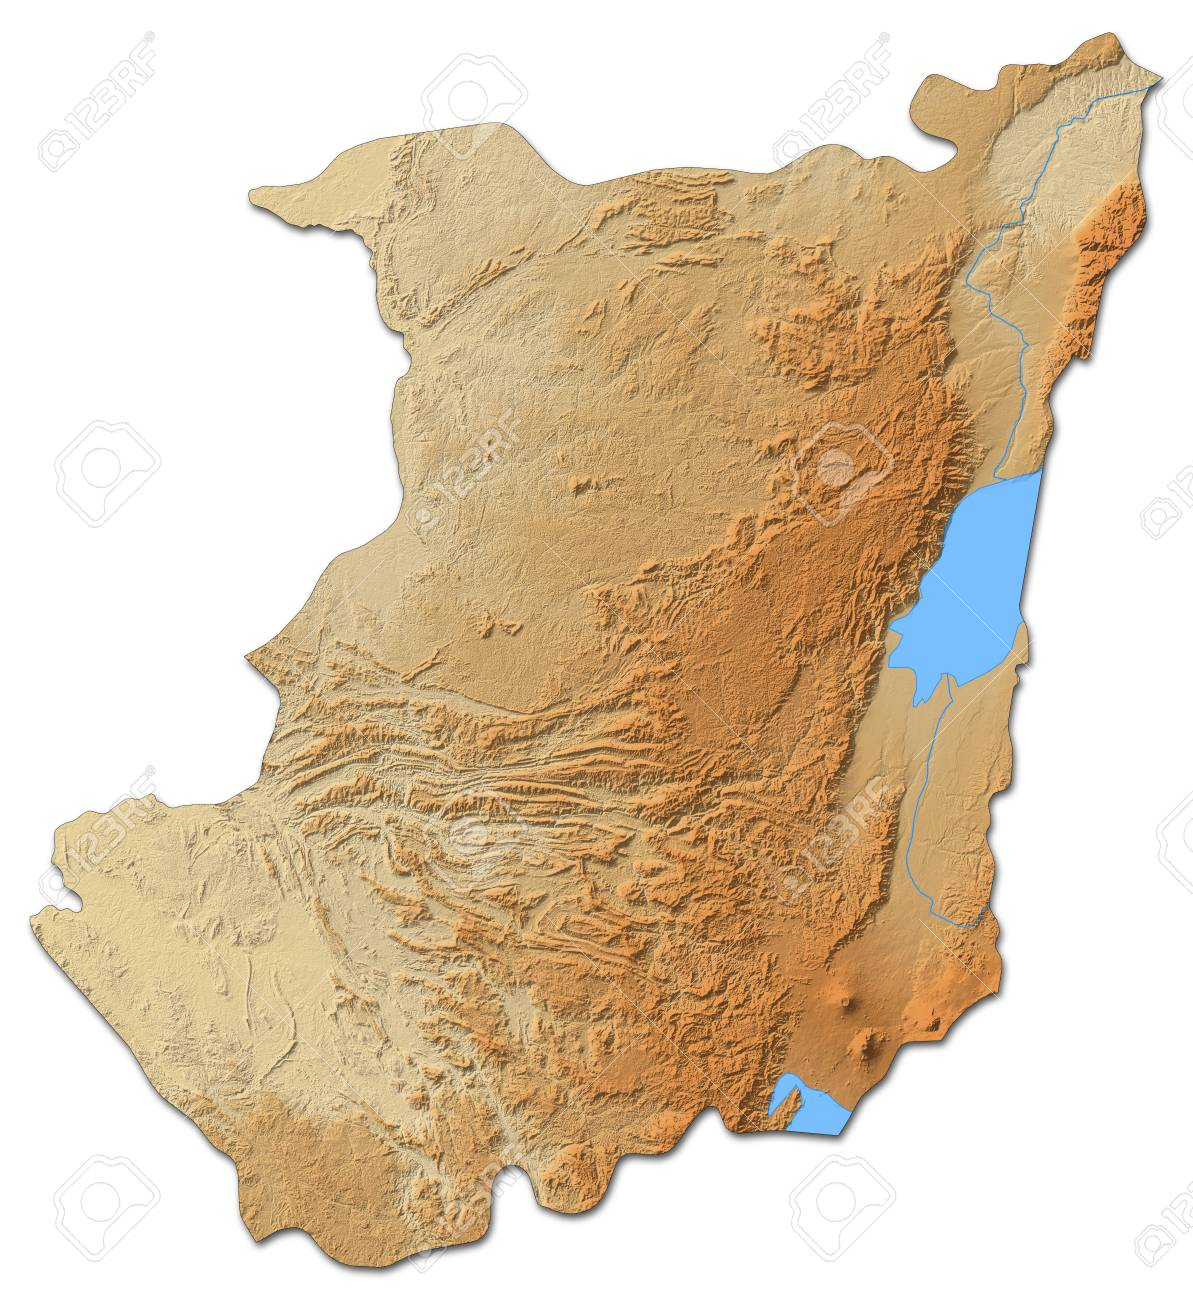 Relief map of North Kivu, a province of Democratic Republic of.. on map of northern philippines, map of northern tanzania, map of northern pacific islands, map of northern ukraine, map of northern switzerland, map of northern us & canada, map of northern greece, map of northern jordan, map of northern brazil, map of northern japan, map of northern austria, map of northern georgia, map of northern norway, map of northern chile, map of northern caribbean islands, map of northern pakistan, map of northern europe, map of northern yellowstone, map of northern morocco, map of northern united states of america,